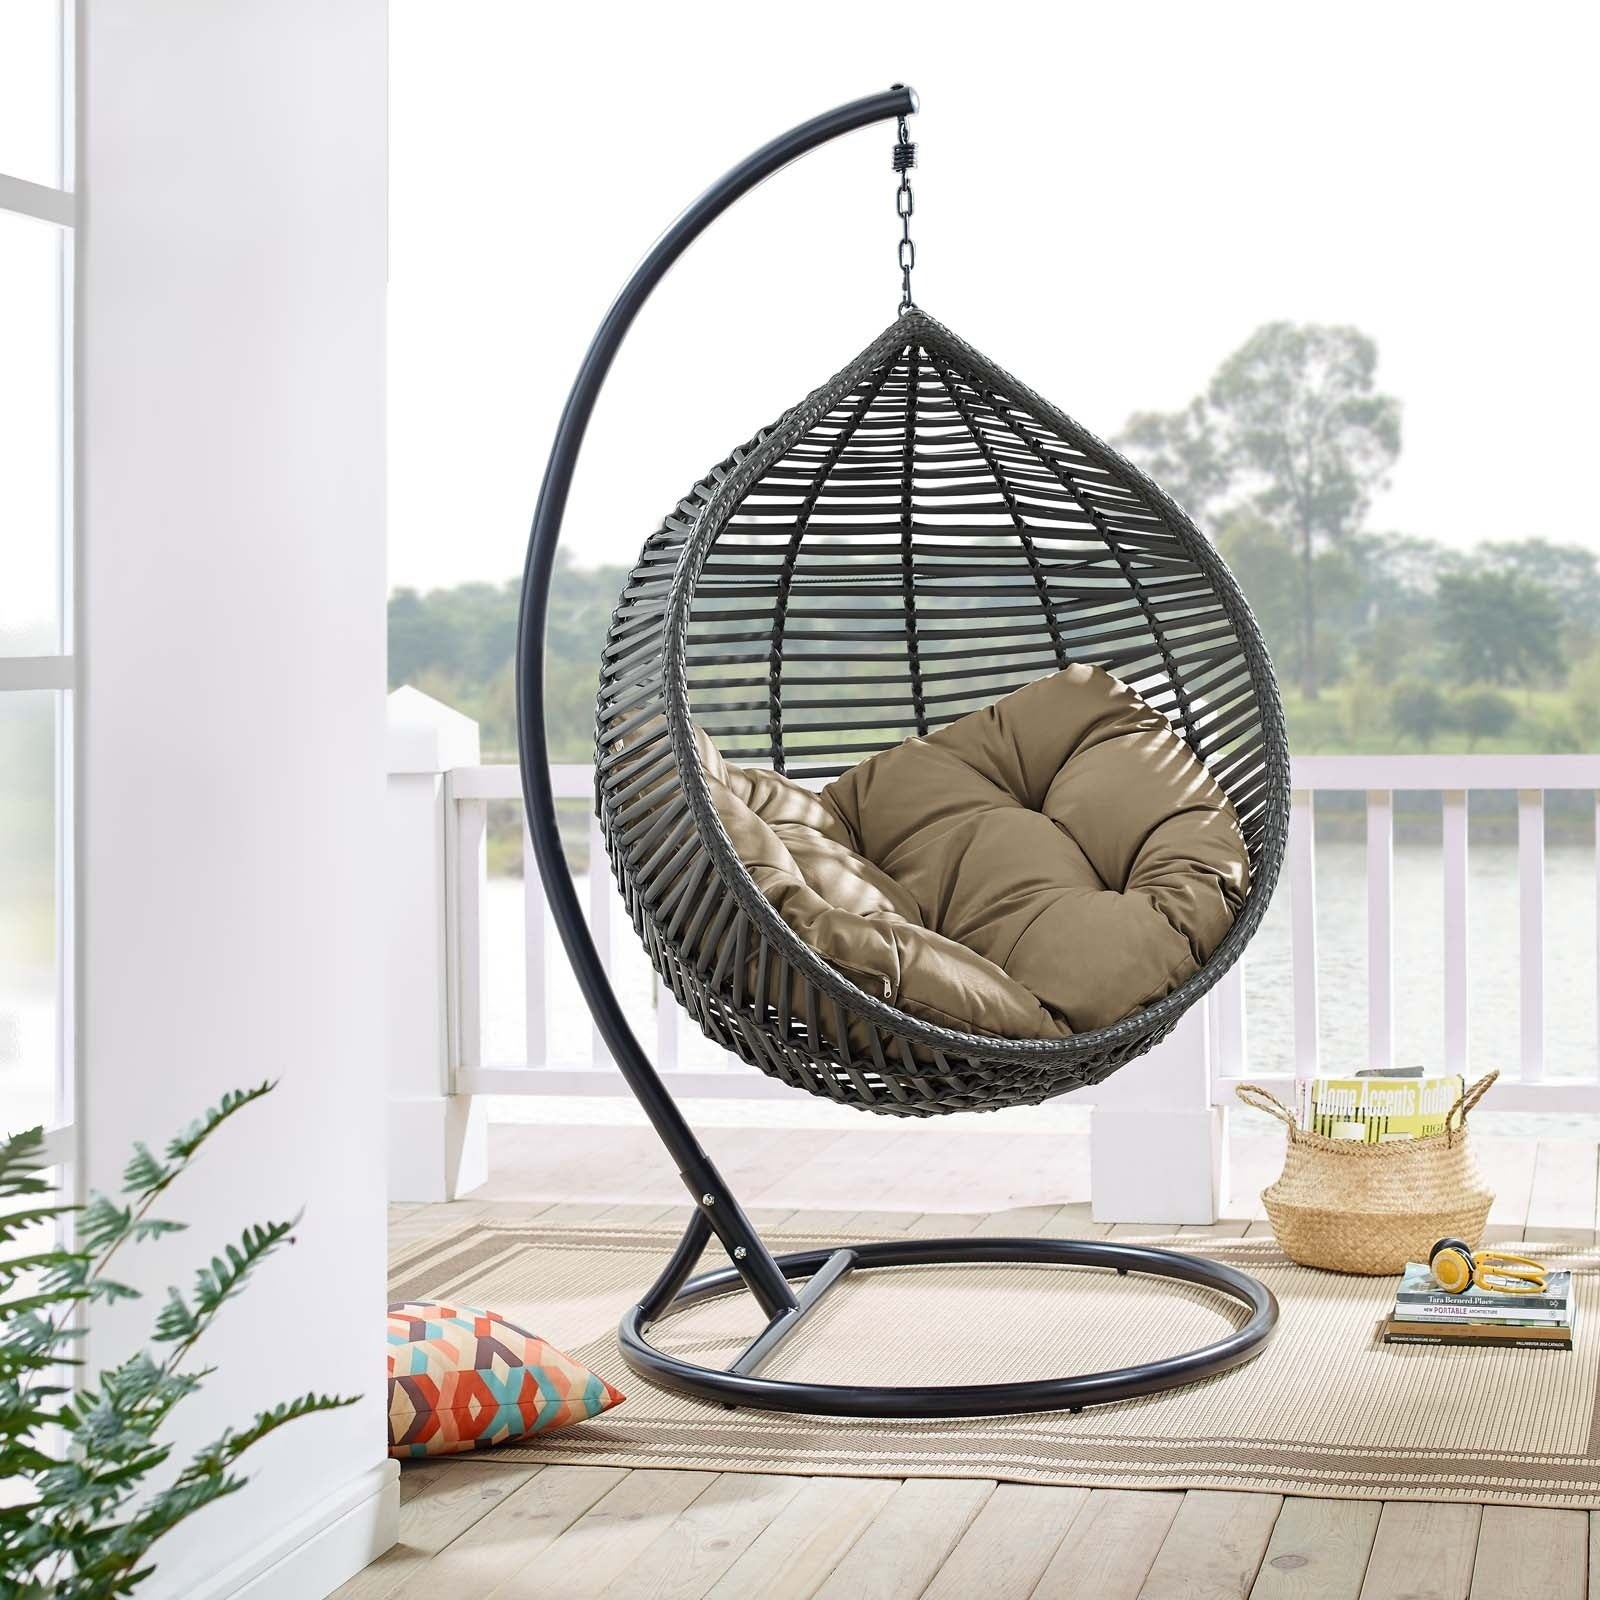 Surprising Garner Teardrop Outdoor Patio Swing Chair Ocoug Best Dining Table And Chair Ideas Images Ocougorg